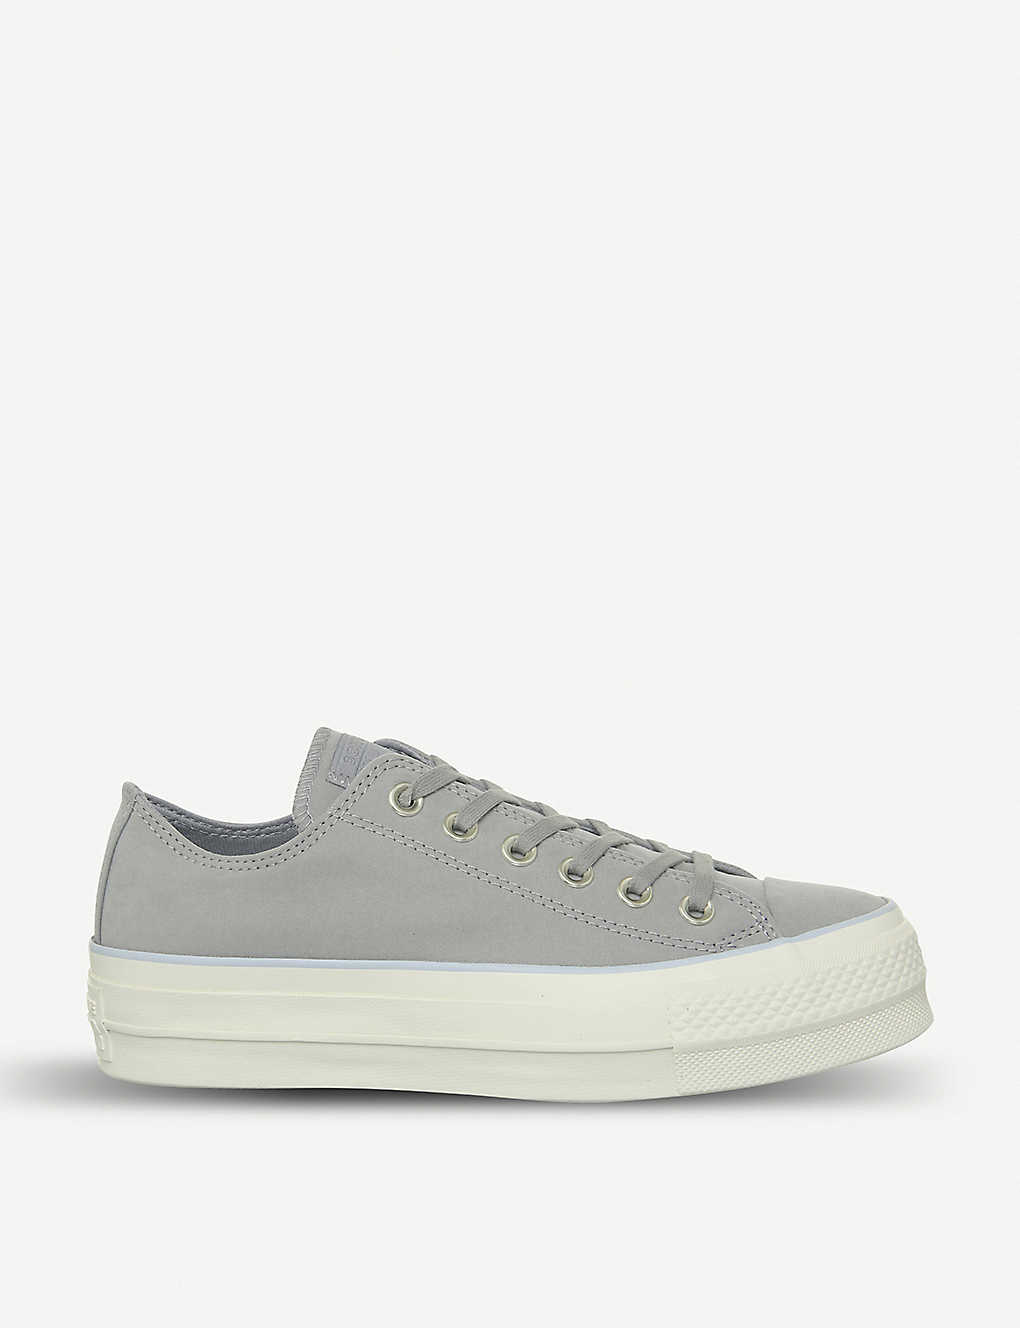 3a2705842b19 CONVERSE - All Star Low Platform leather trainers